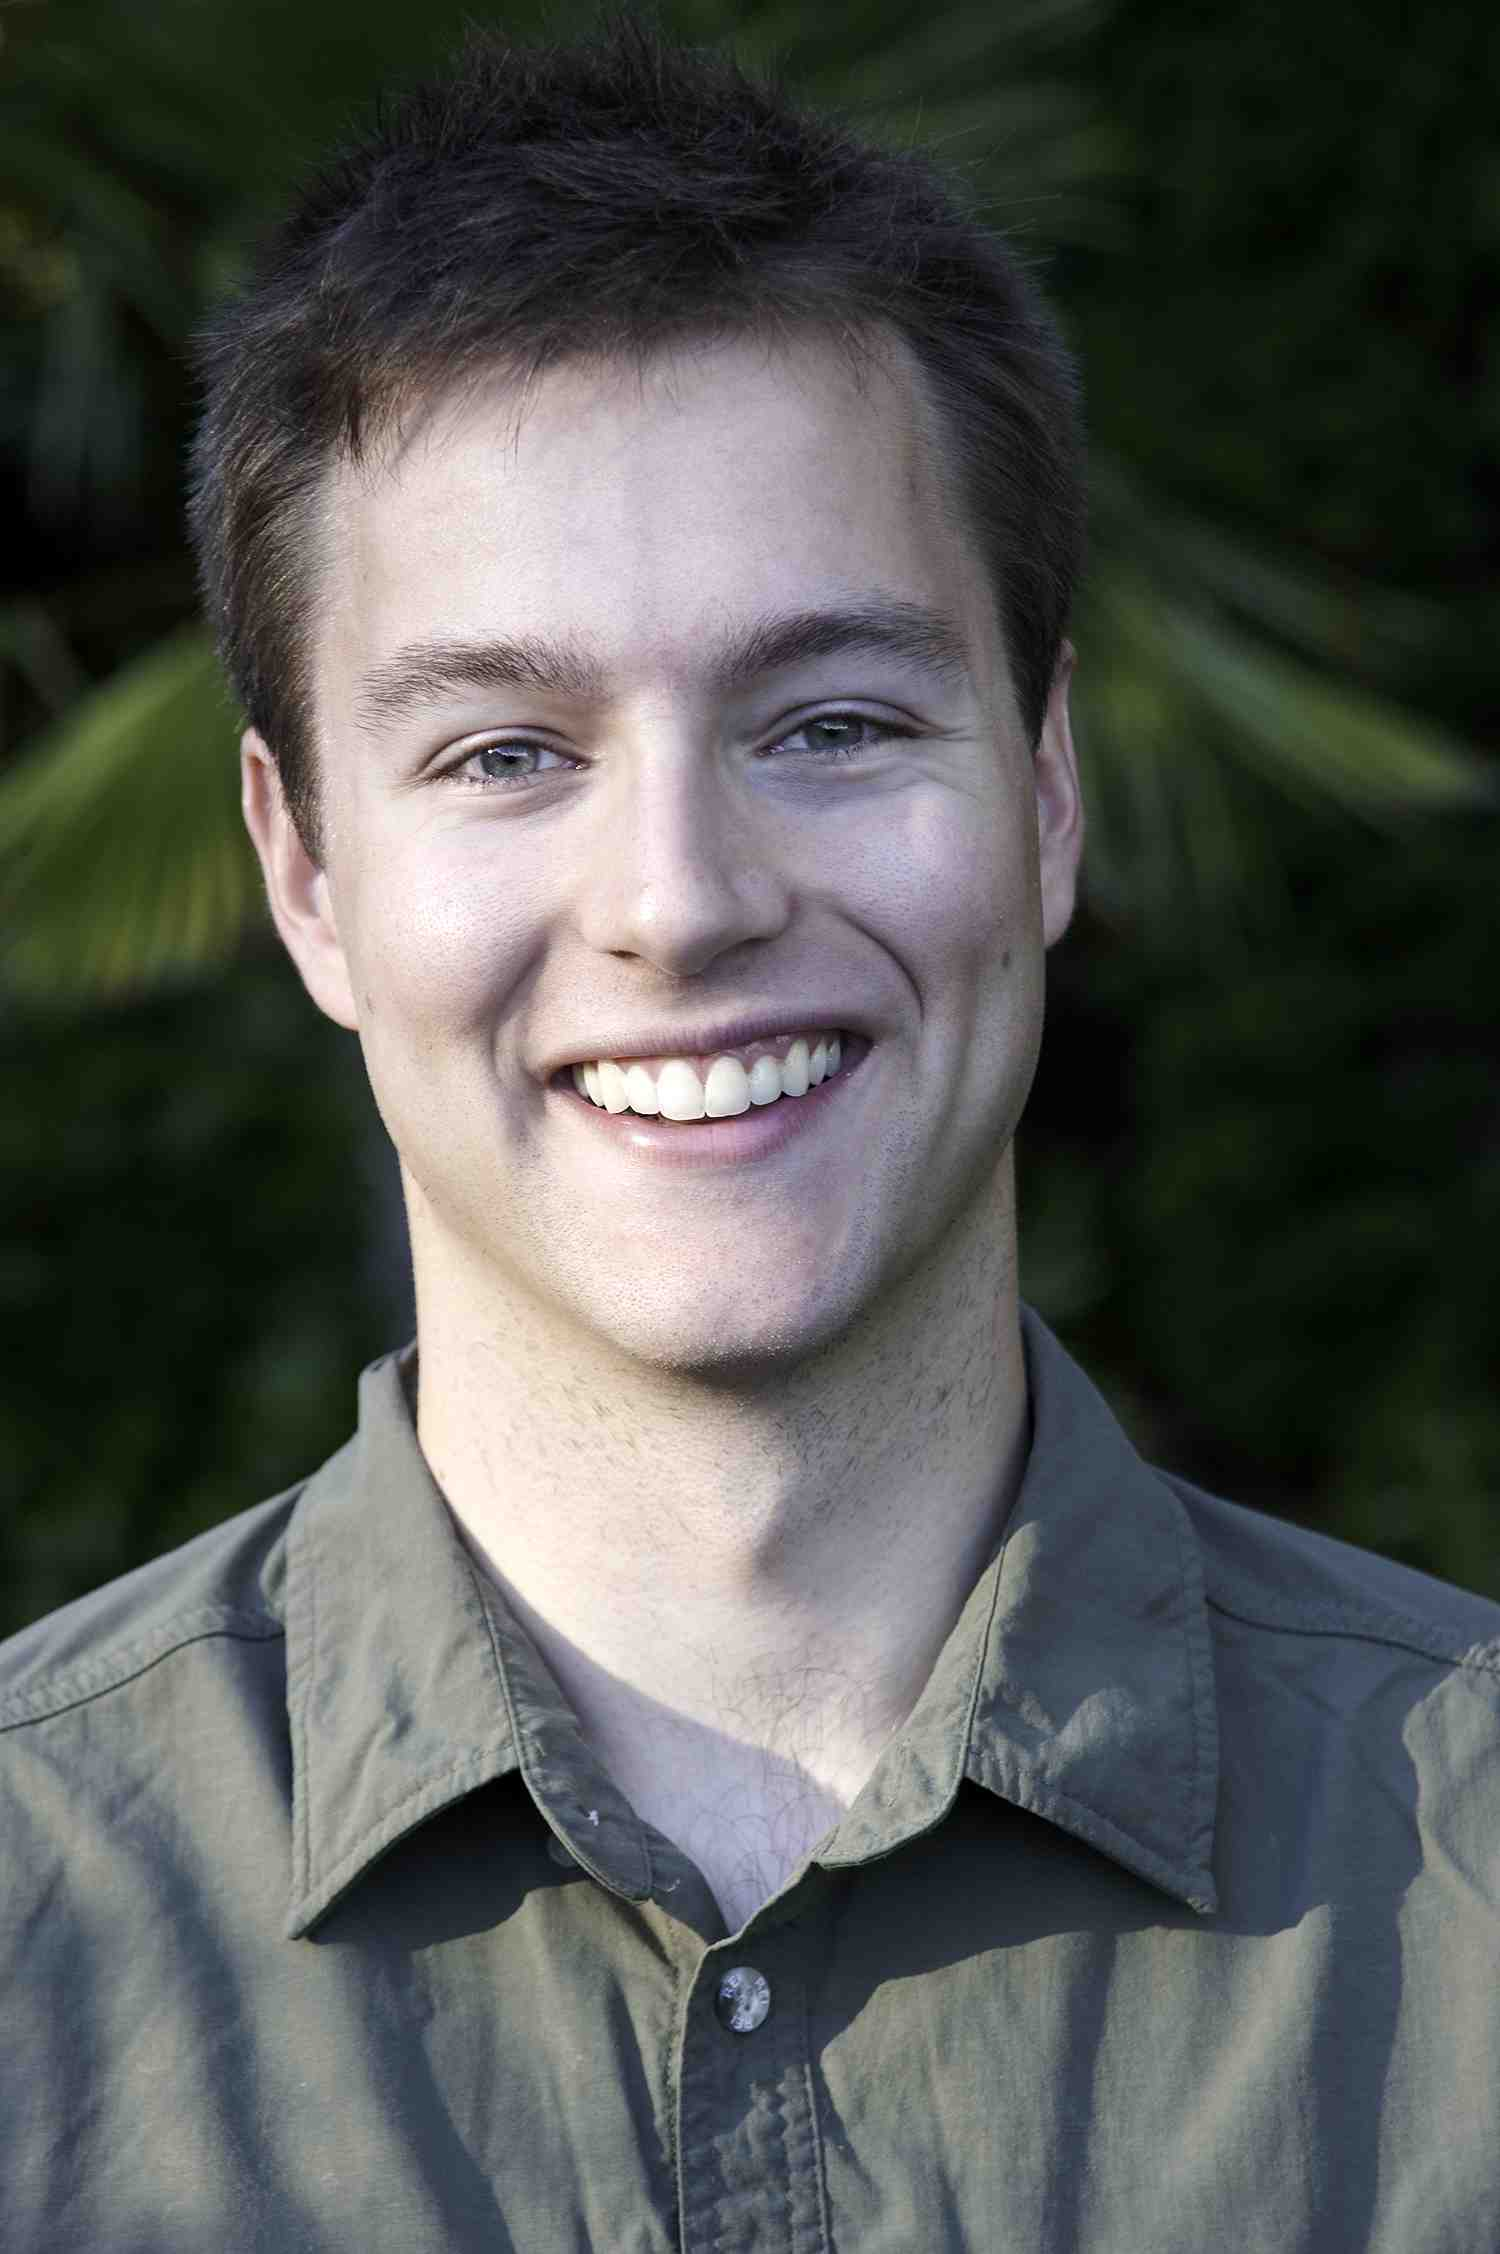 ttp://faculty.washington.edu/jsachs/lab/www/Research/people/conor_myhrvold_headshot_sm.jpg